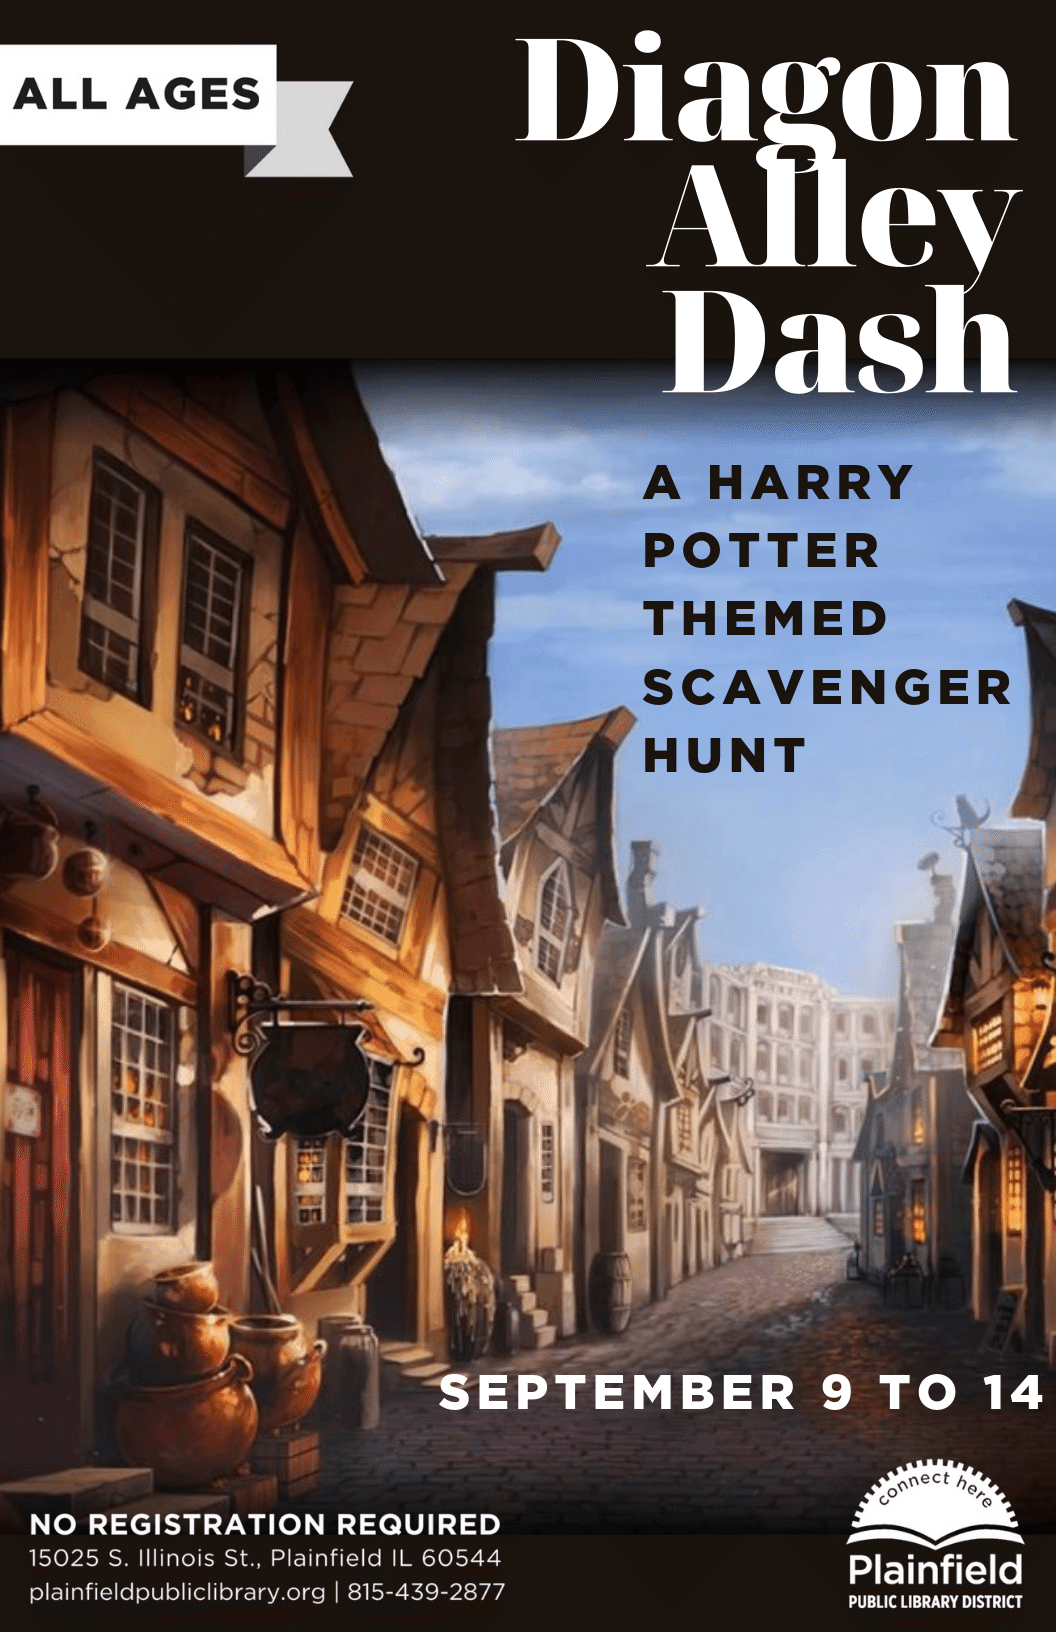 Diagon Alley Dash